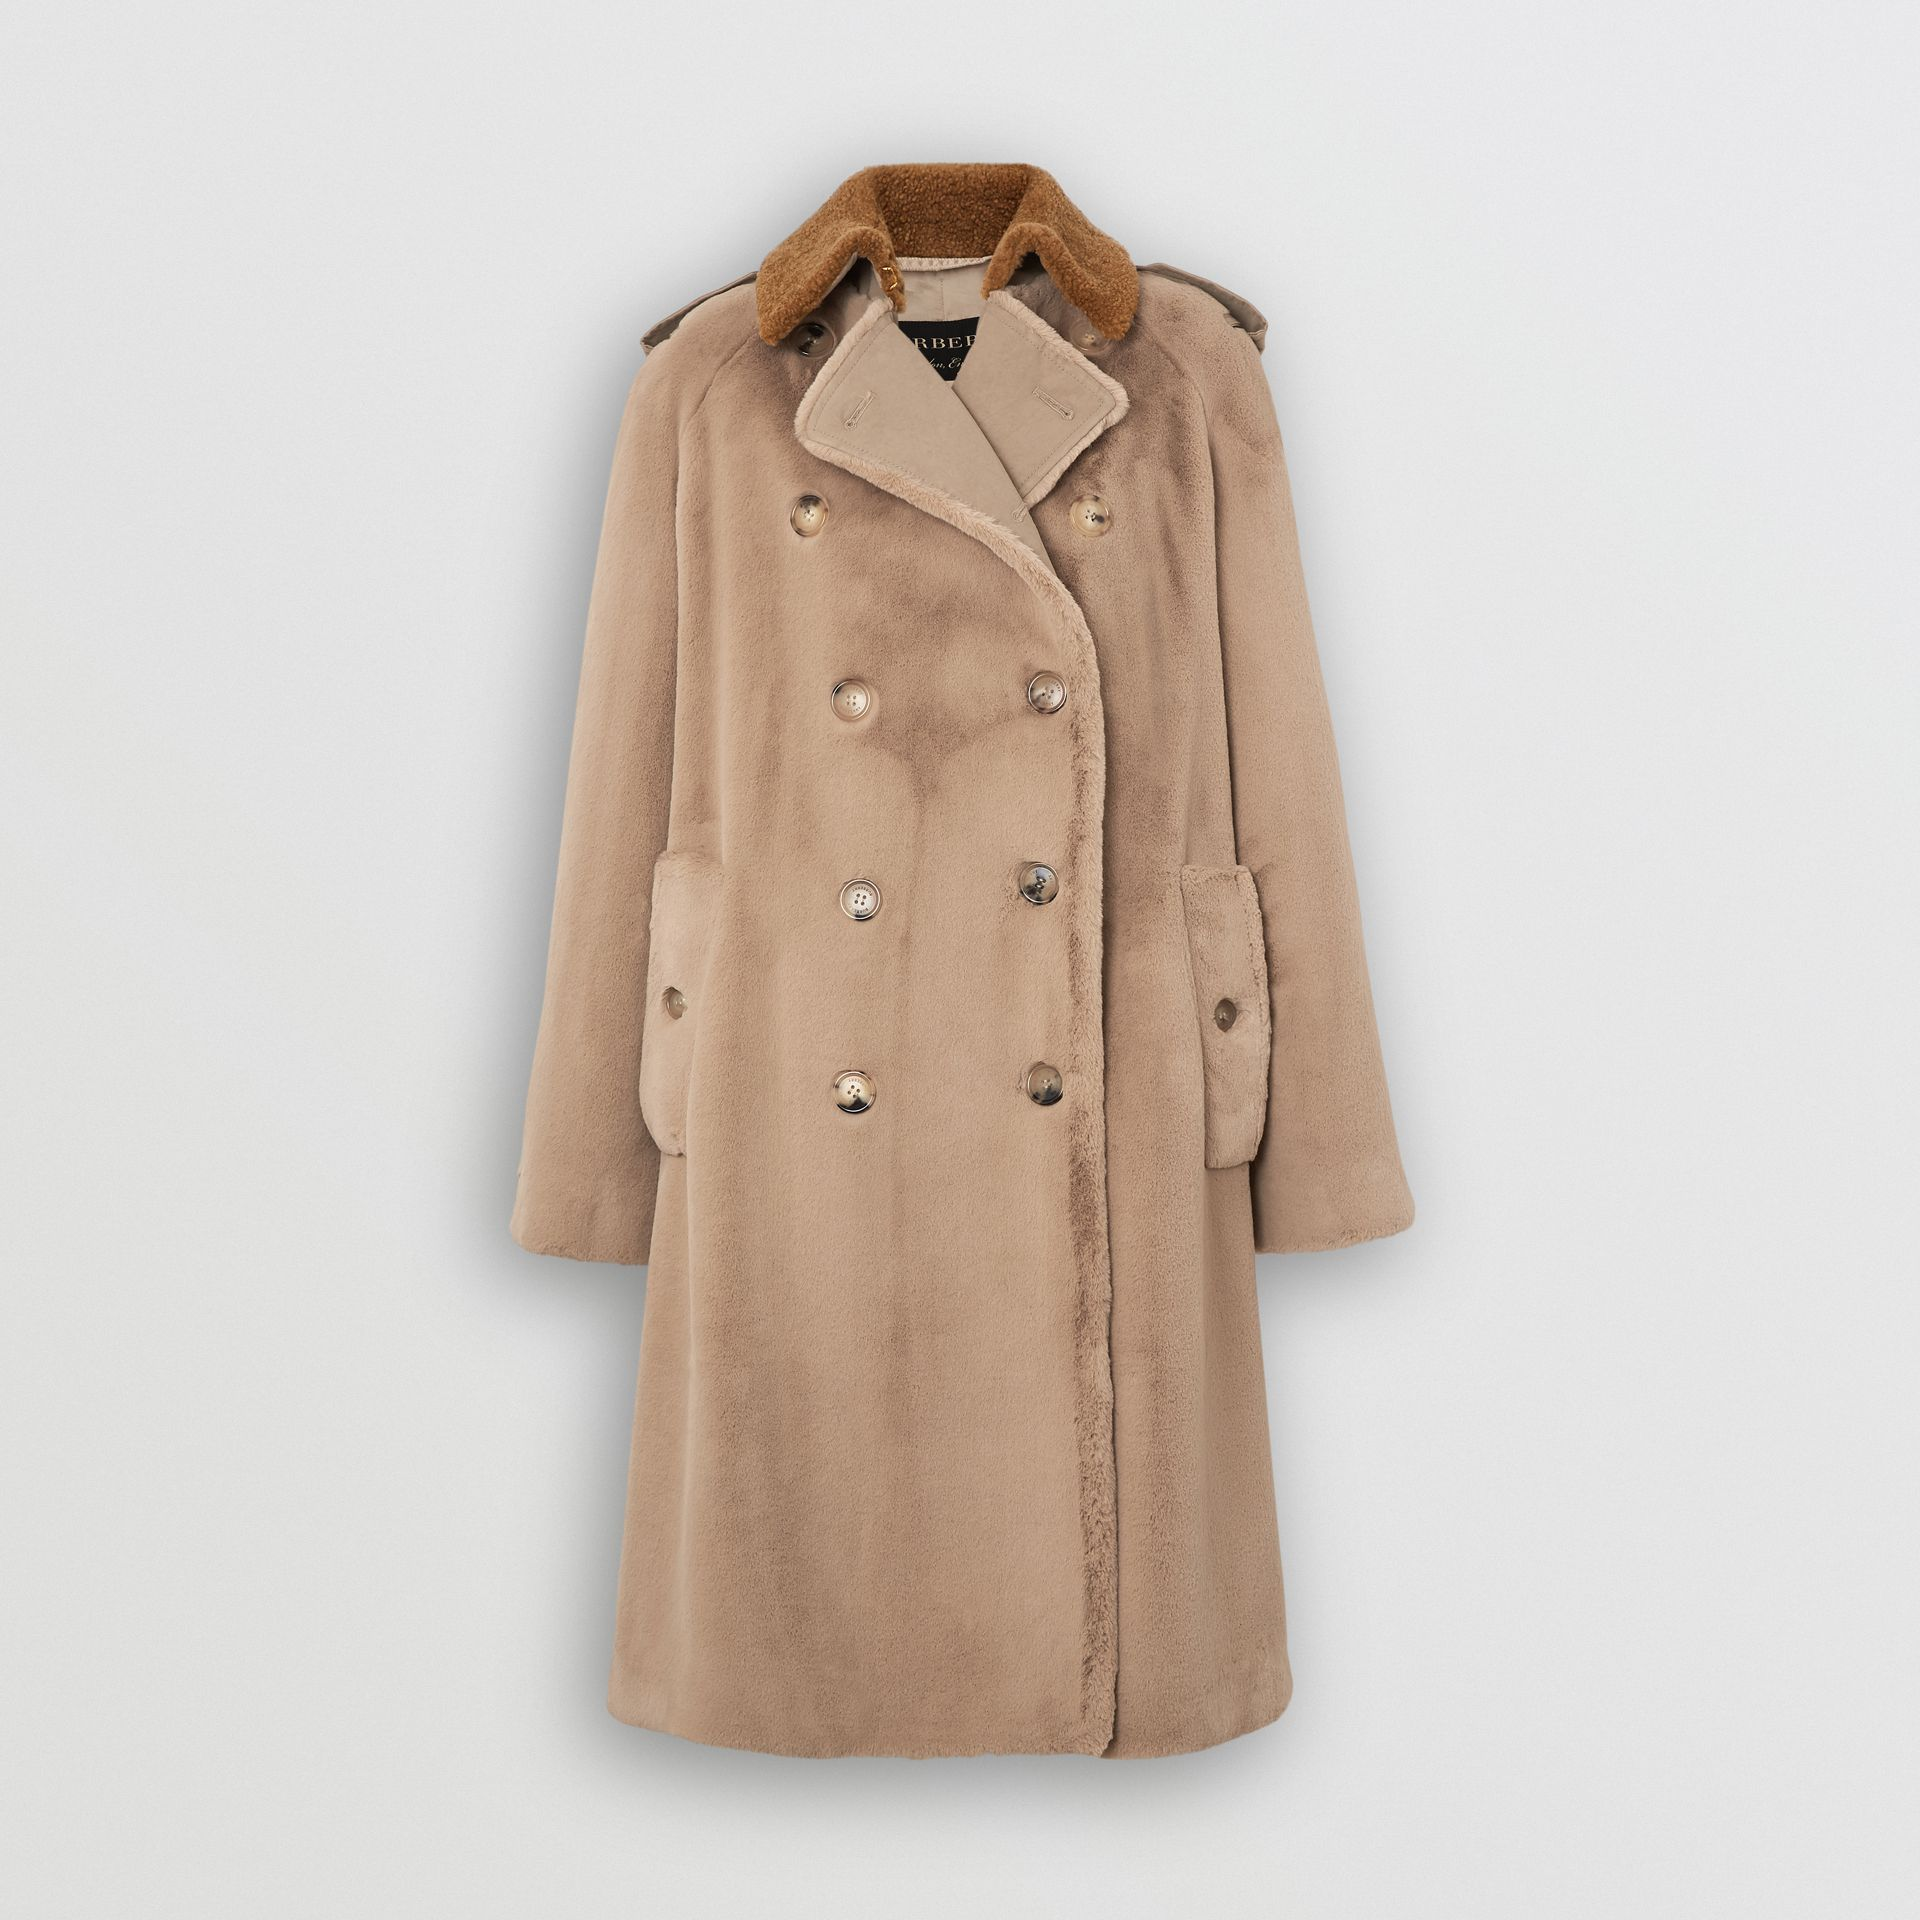 Shearling Trim Faux Fur Trench Coat in Taupe - Women | Burberry Singapore - gallery image 3